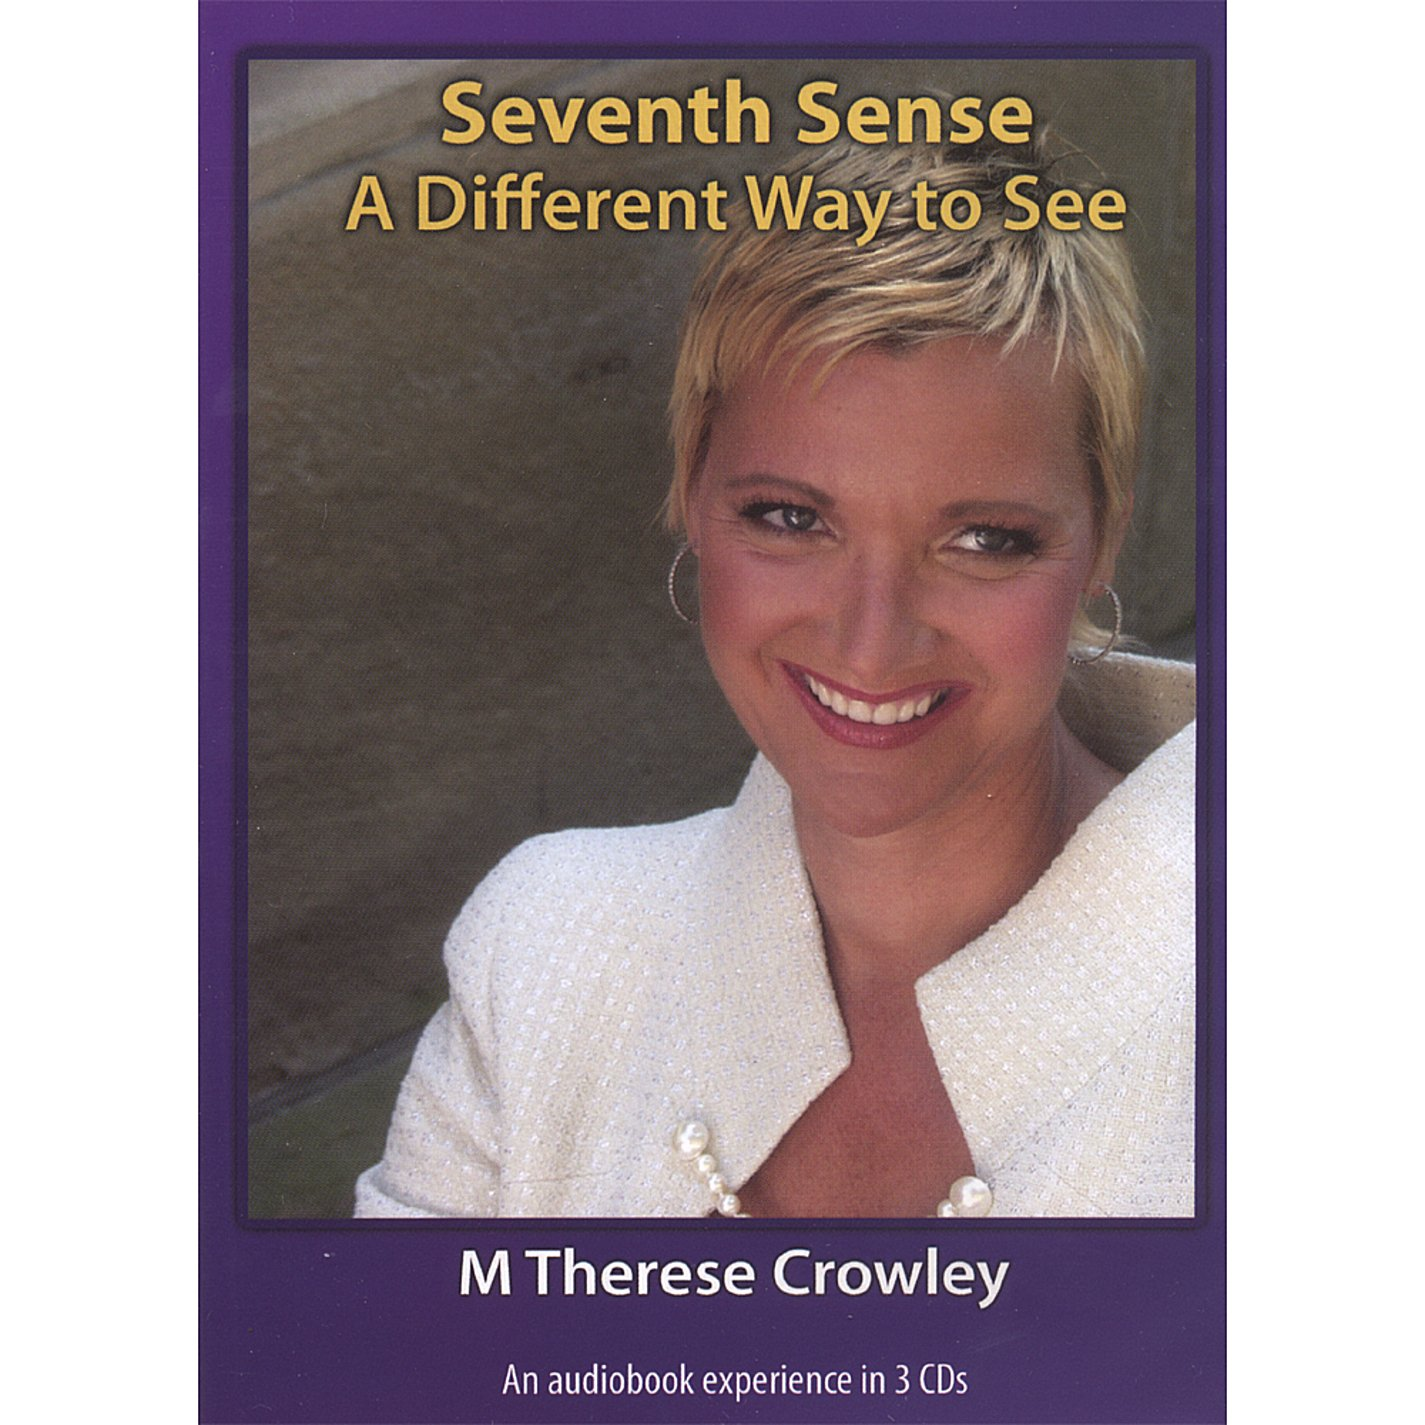 M  Therese Crowley - Seventh Sense: A Different Way to See - Amazon